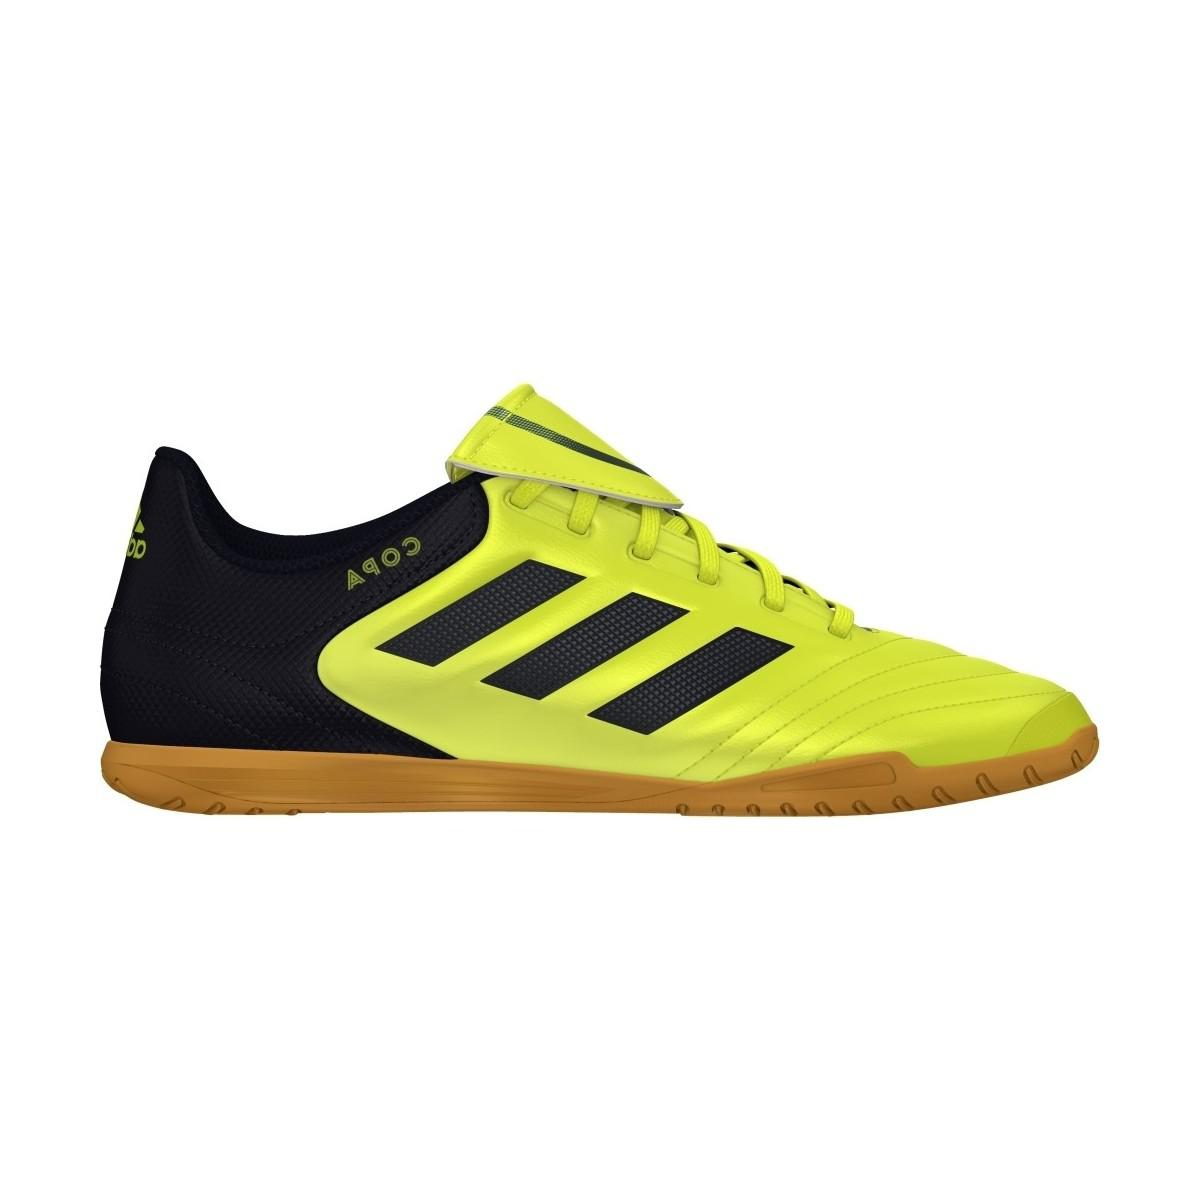 reputable site 071d1 6563d Adidas Copa 17.4 In Mens Football Boots In Yellow in Yellow